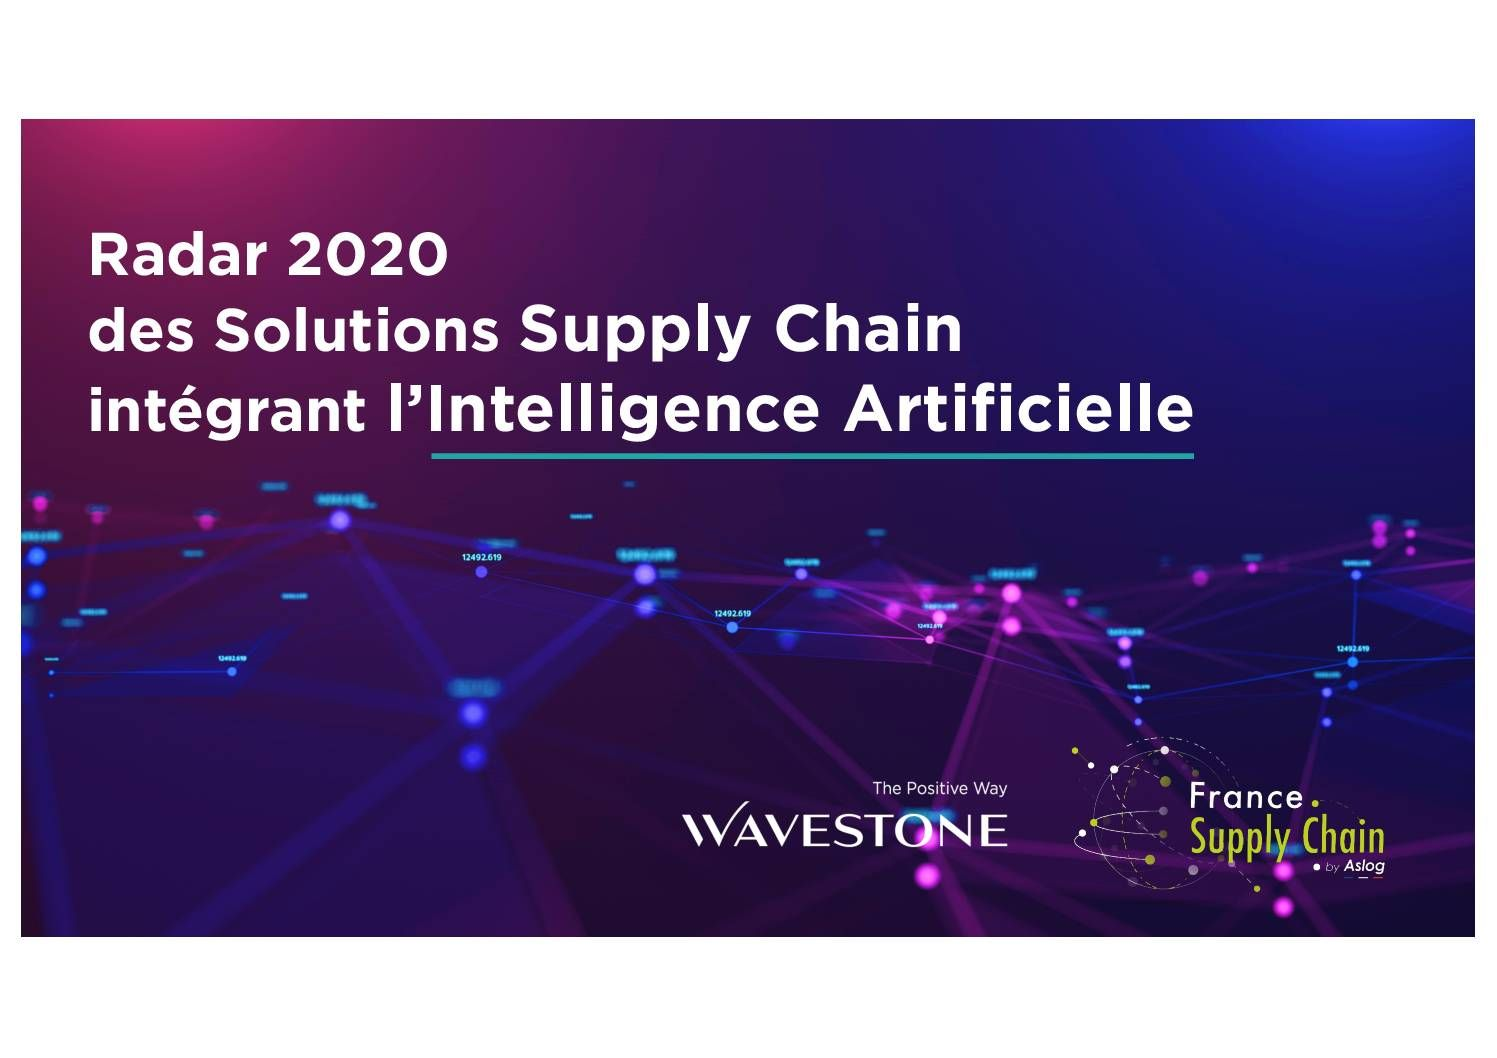 Radar 2020 des Solutions Supply Chain intégrant l'Intelligence Artificielle